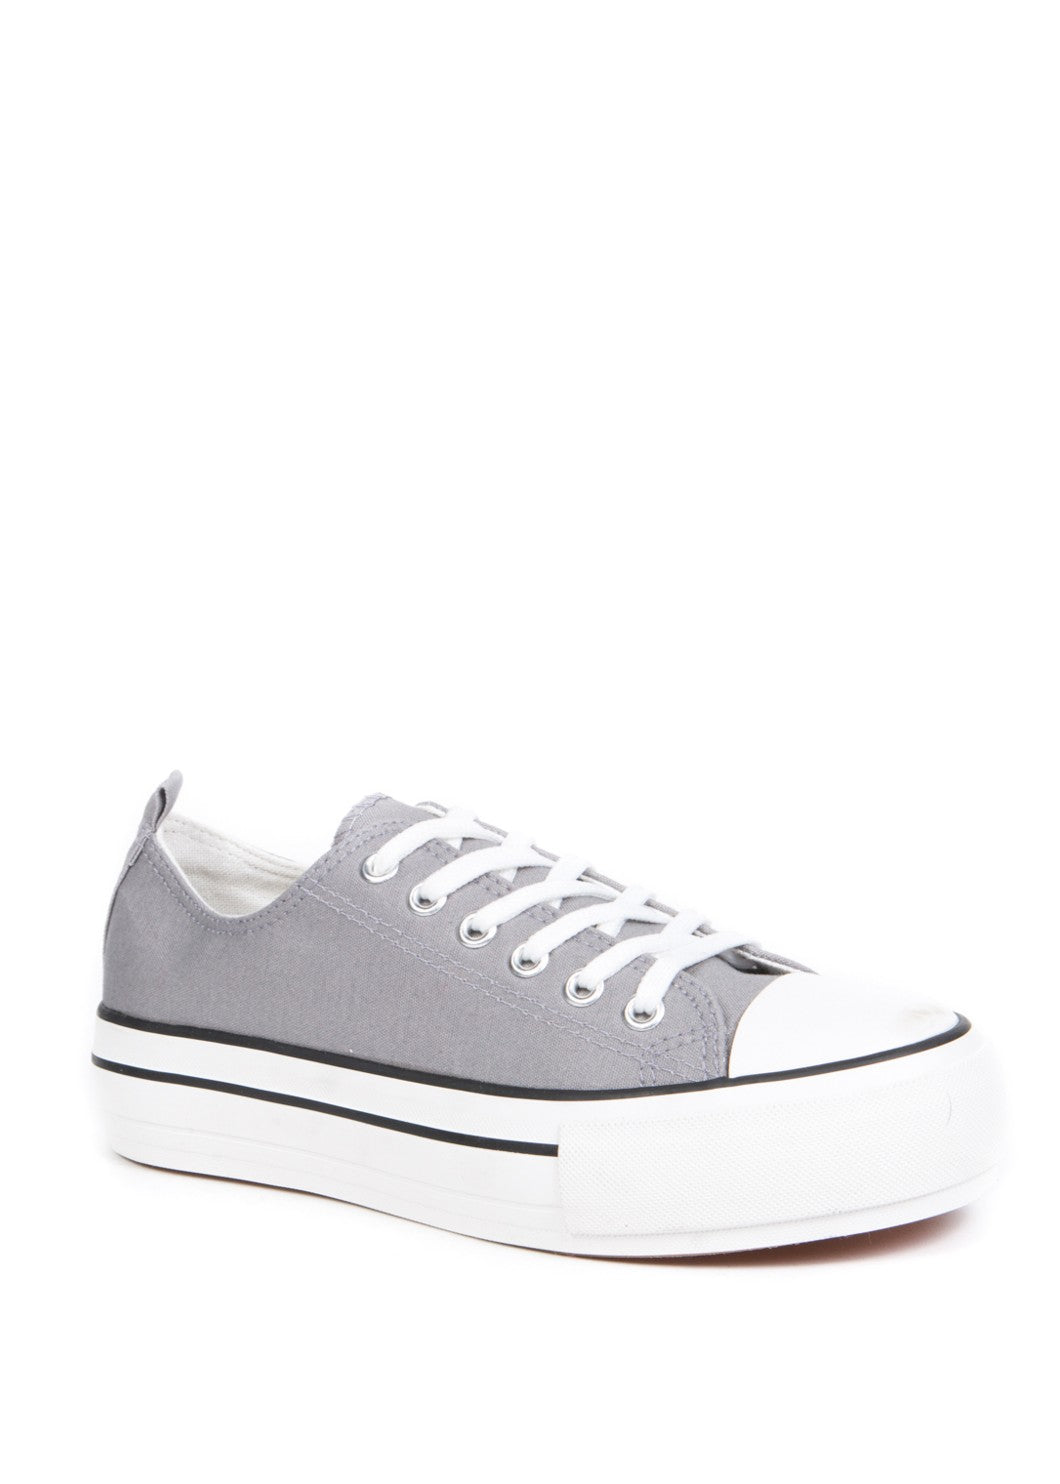 ERIN - Platform Sneakers - Grey